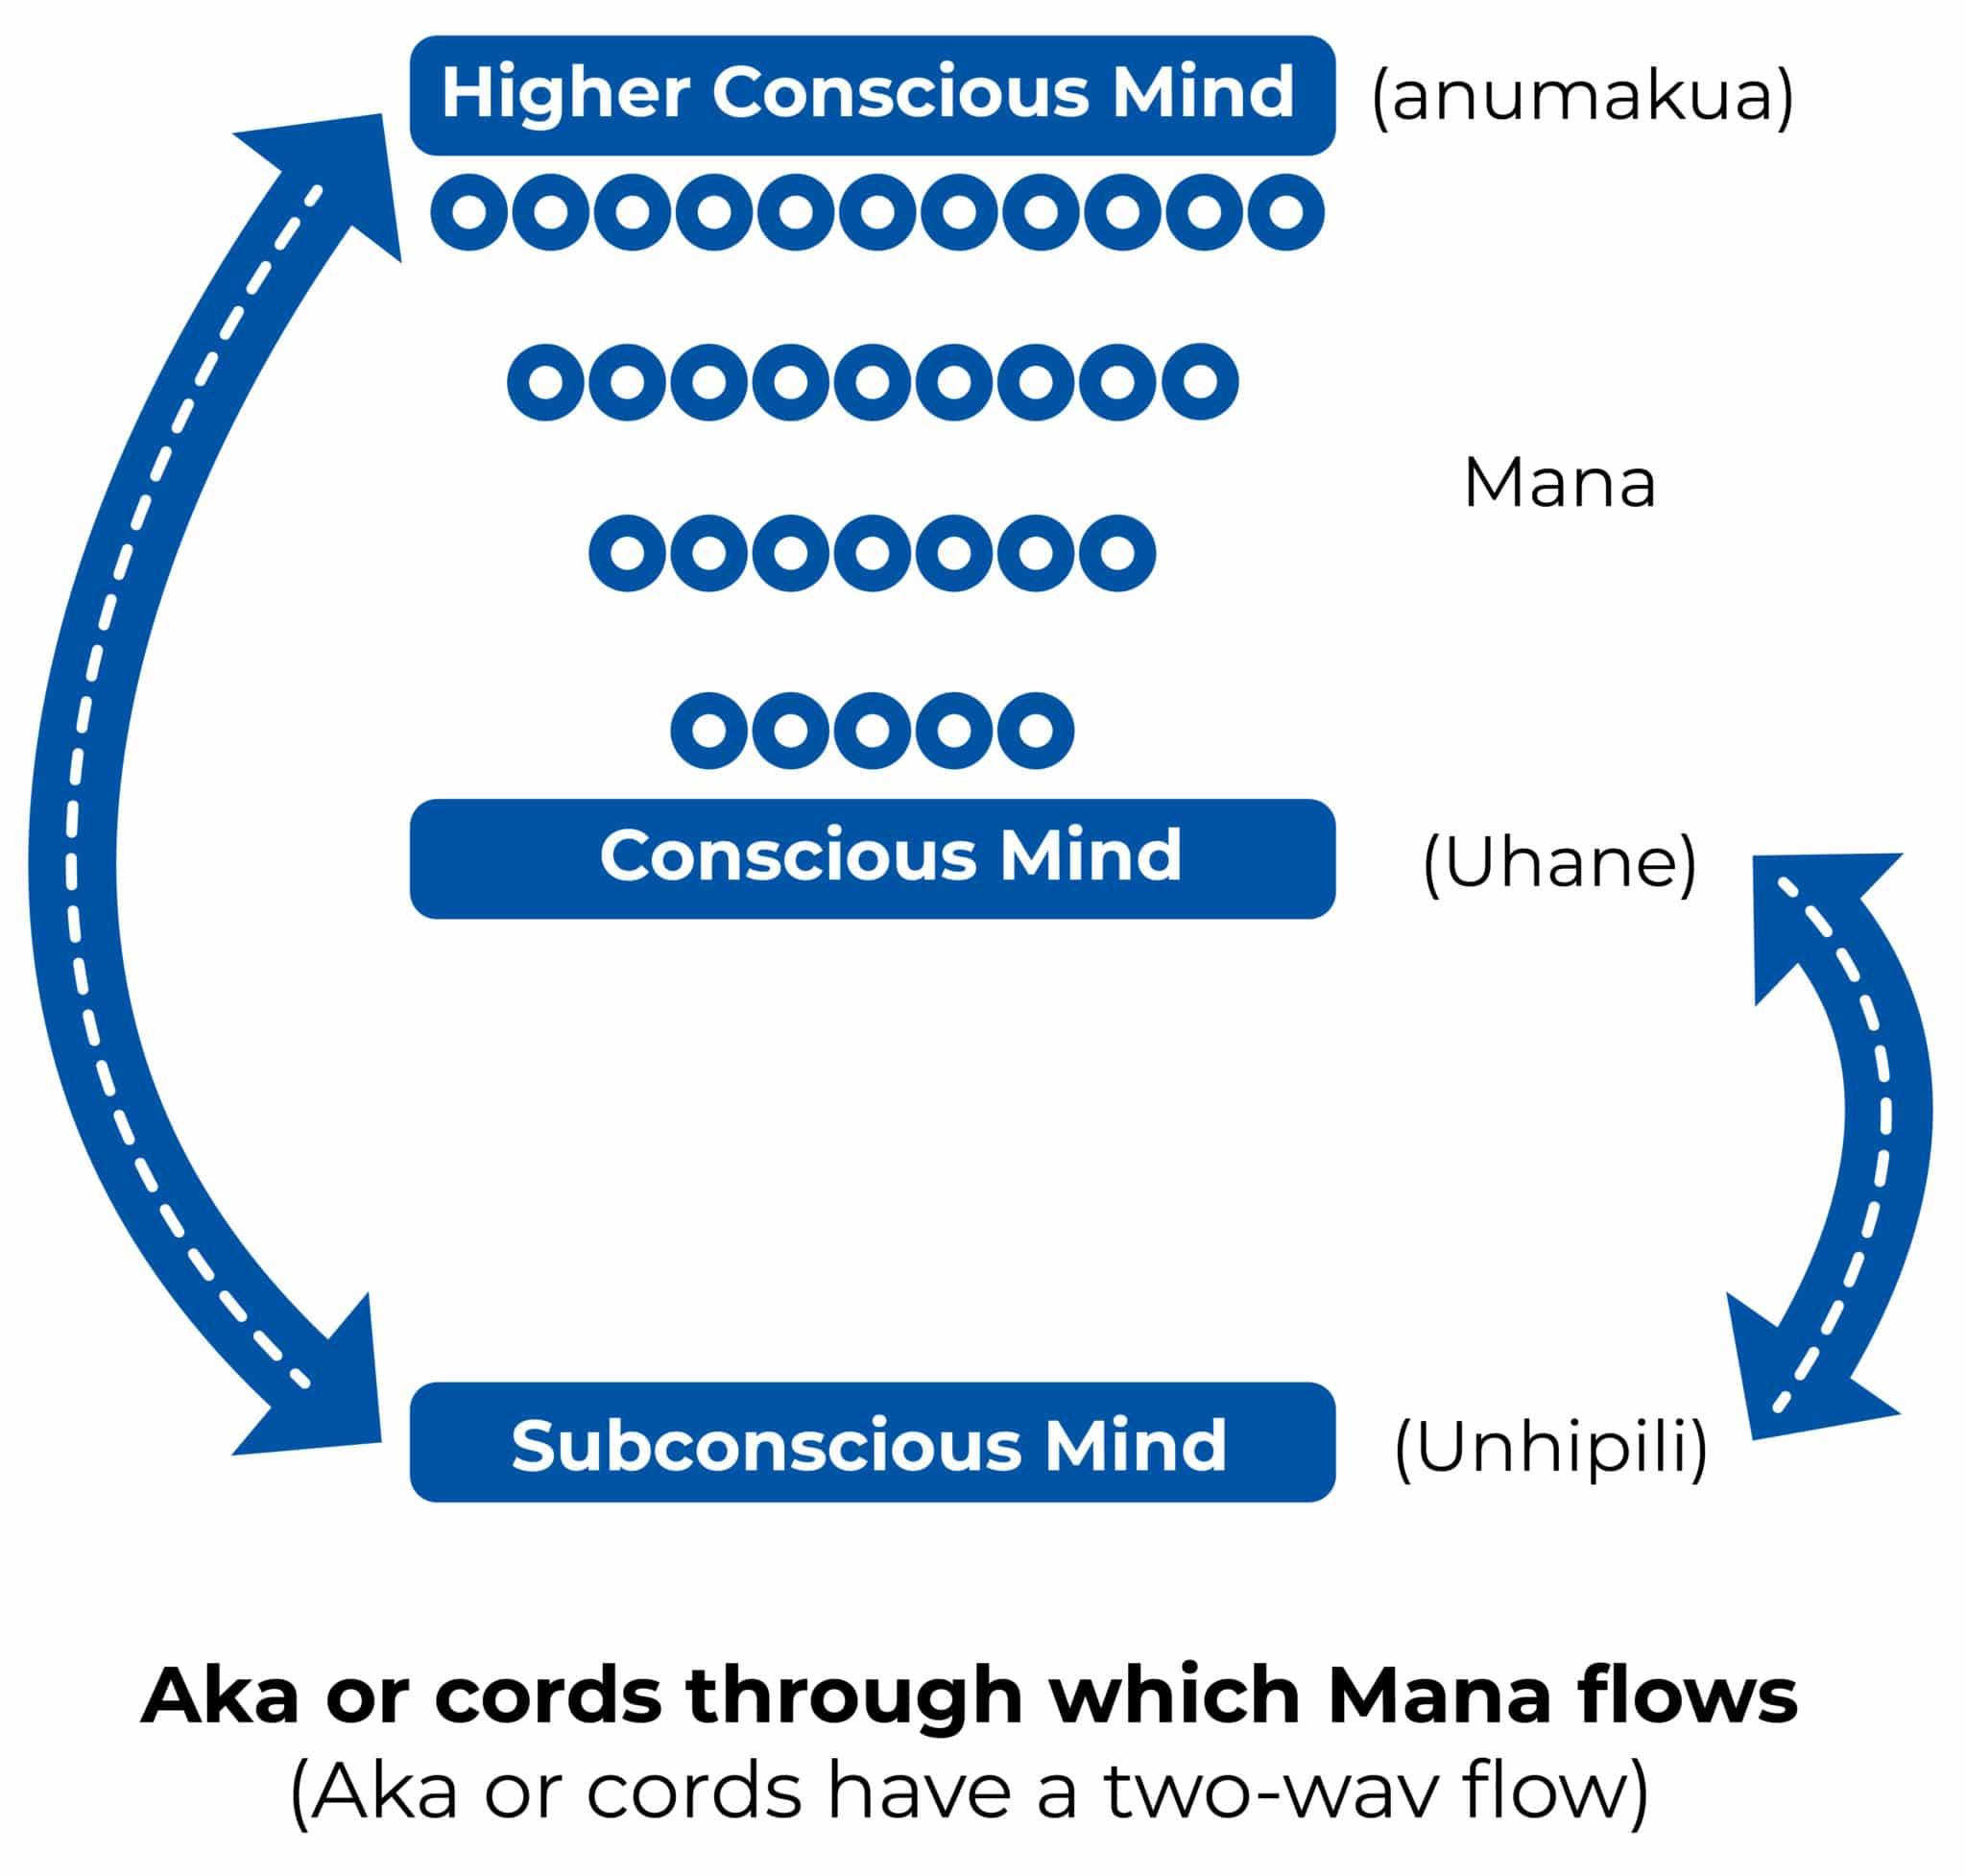 THE INTERRELATIONSHIPS OF THE THREE MINDS